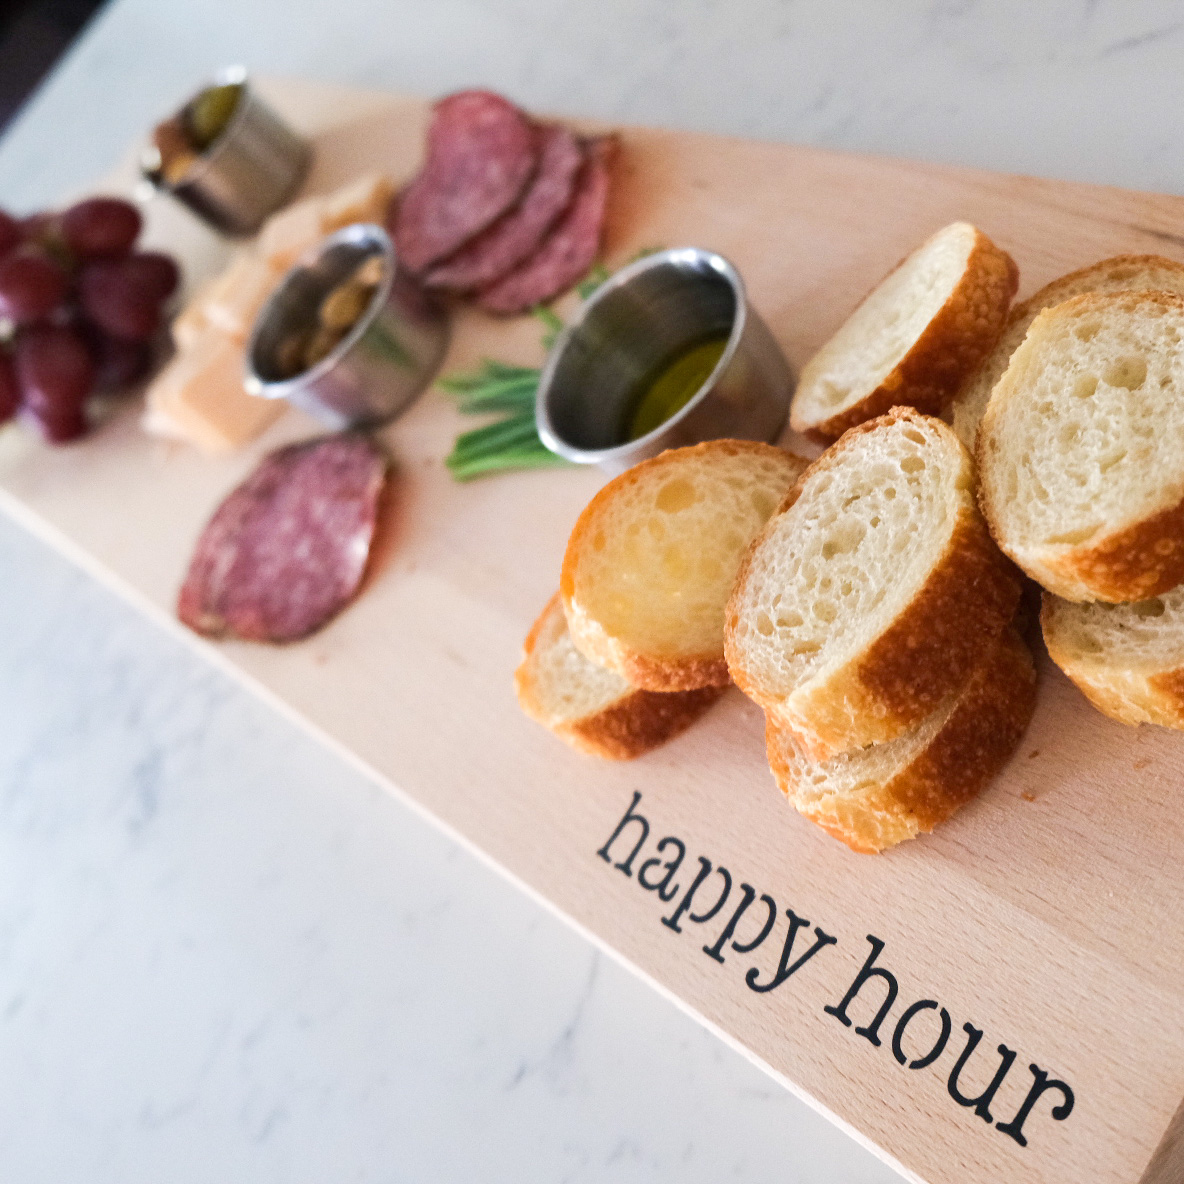 Wooden boards for charcuterie